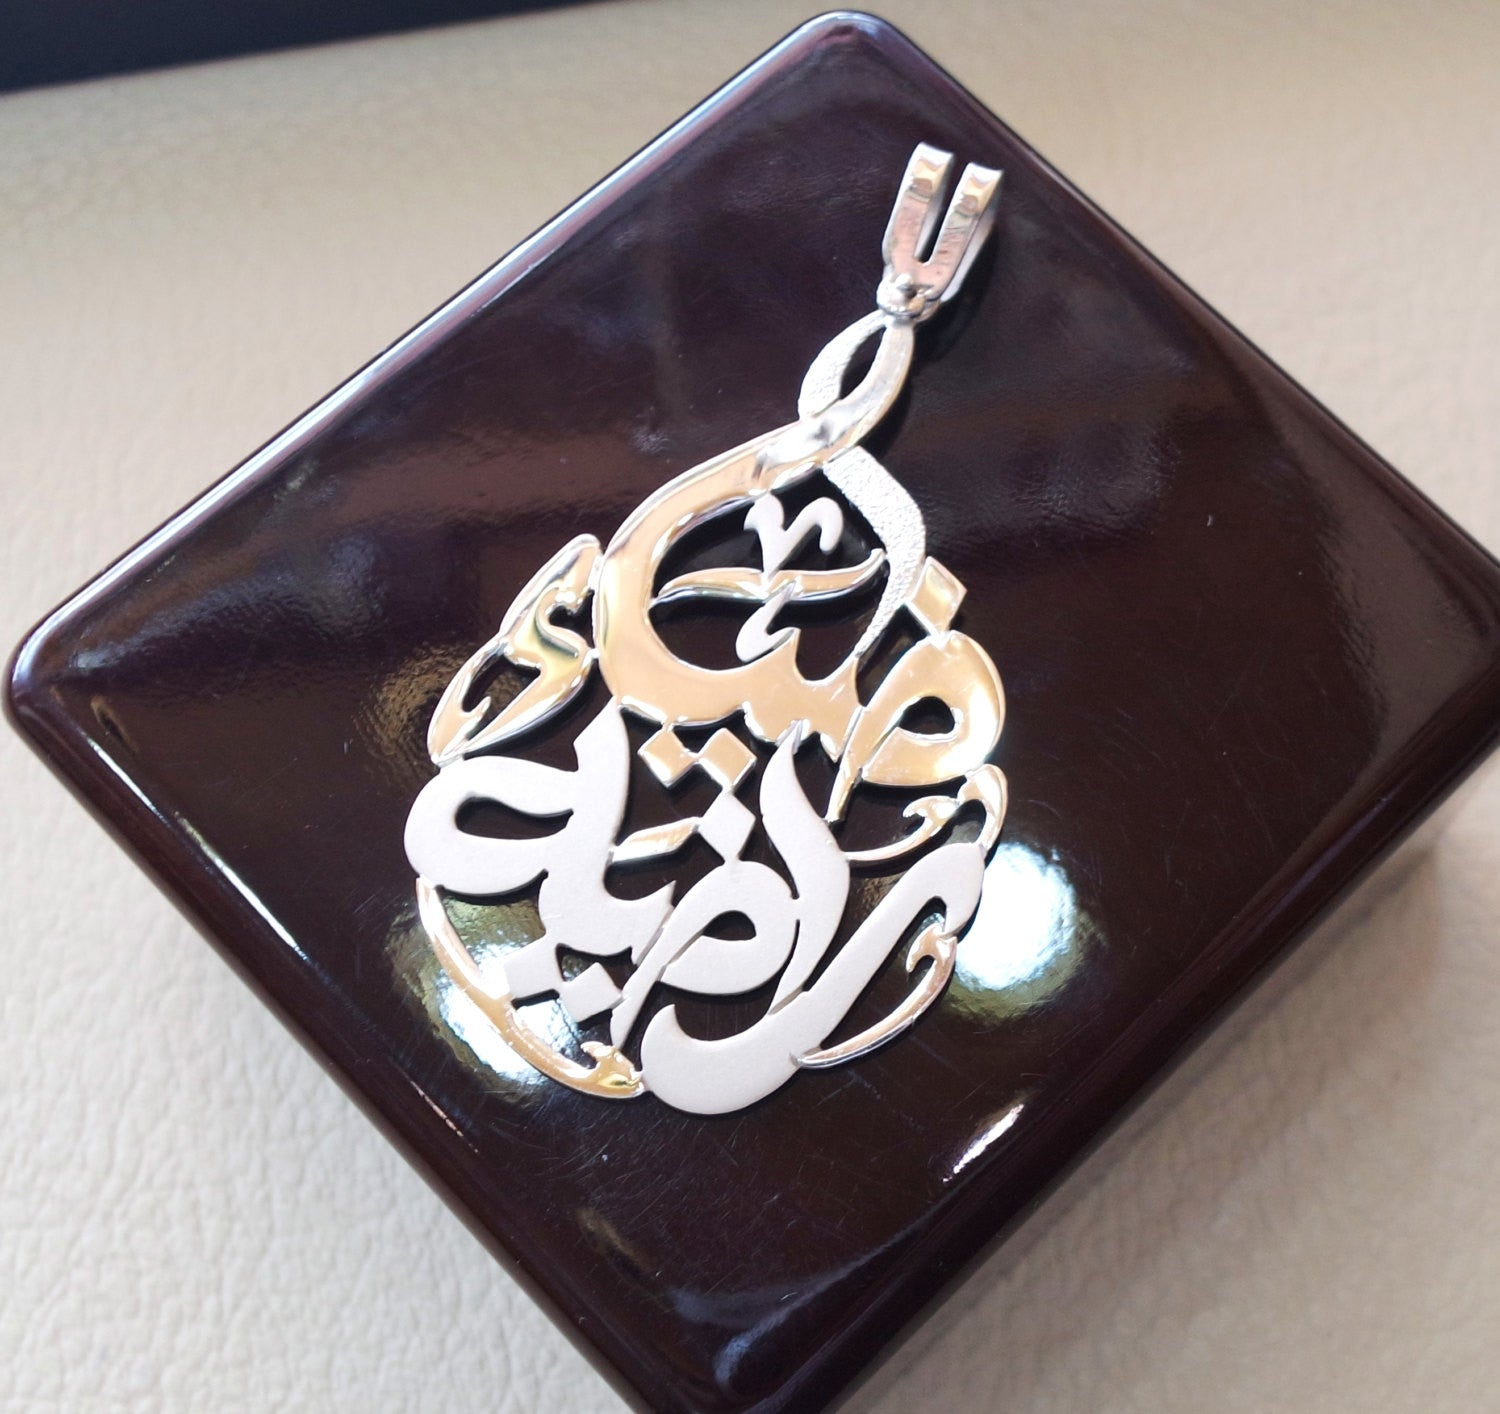 huge pendant any two names arabic made to order customized sterling silver 925 high quality polishing big size pear shape تعليقه اسماء عربي